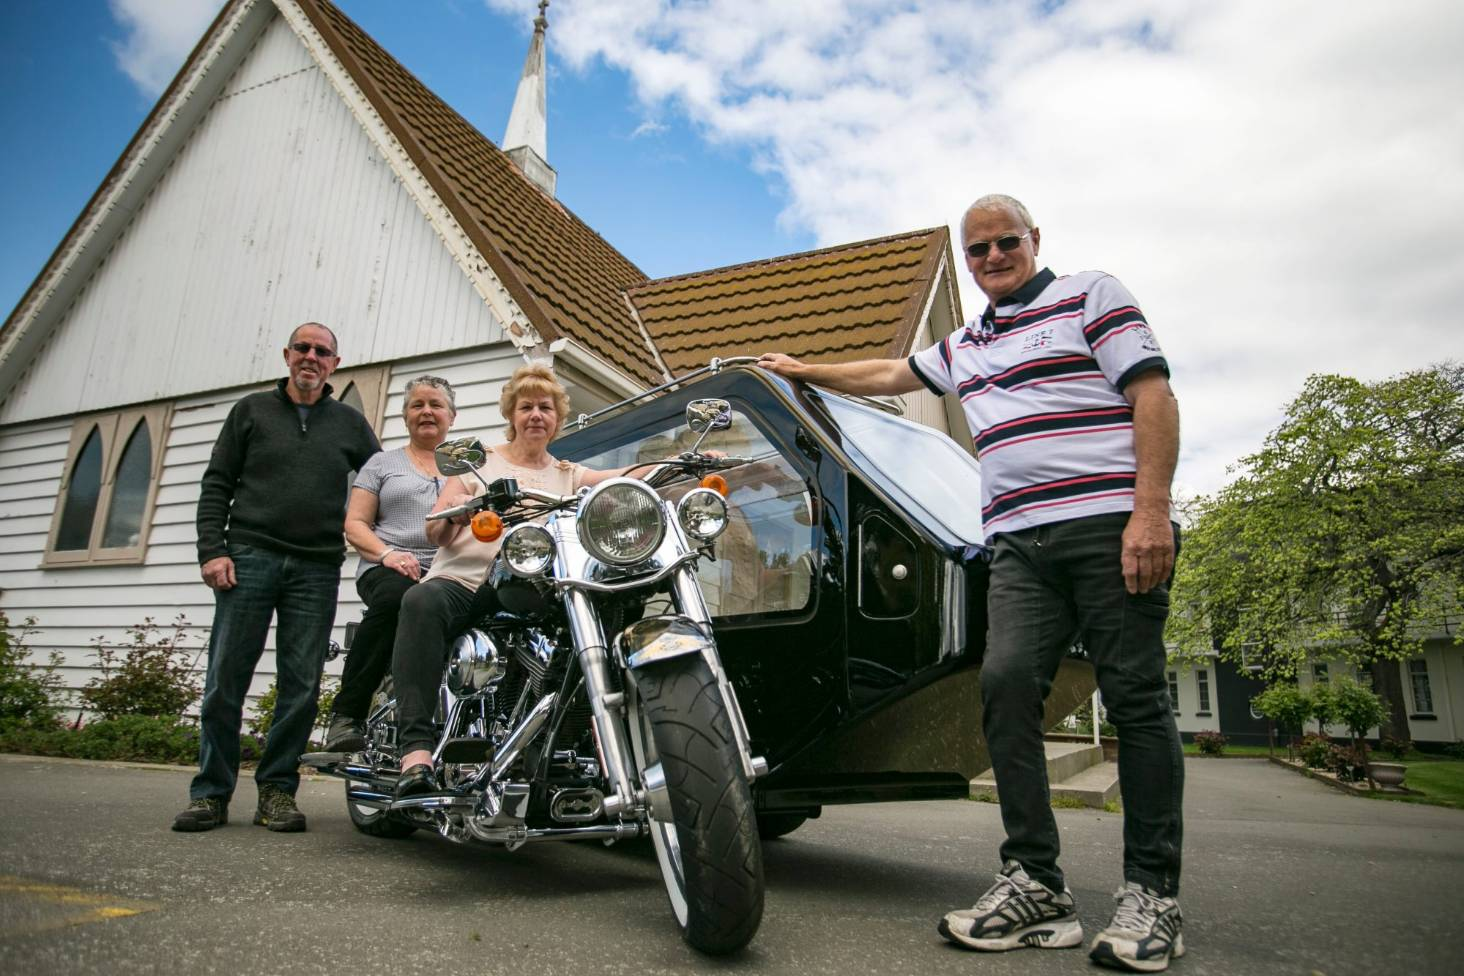 Bikers Have Last Ride In Style With Canterbury Motorcycle Hearses